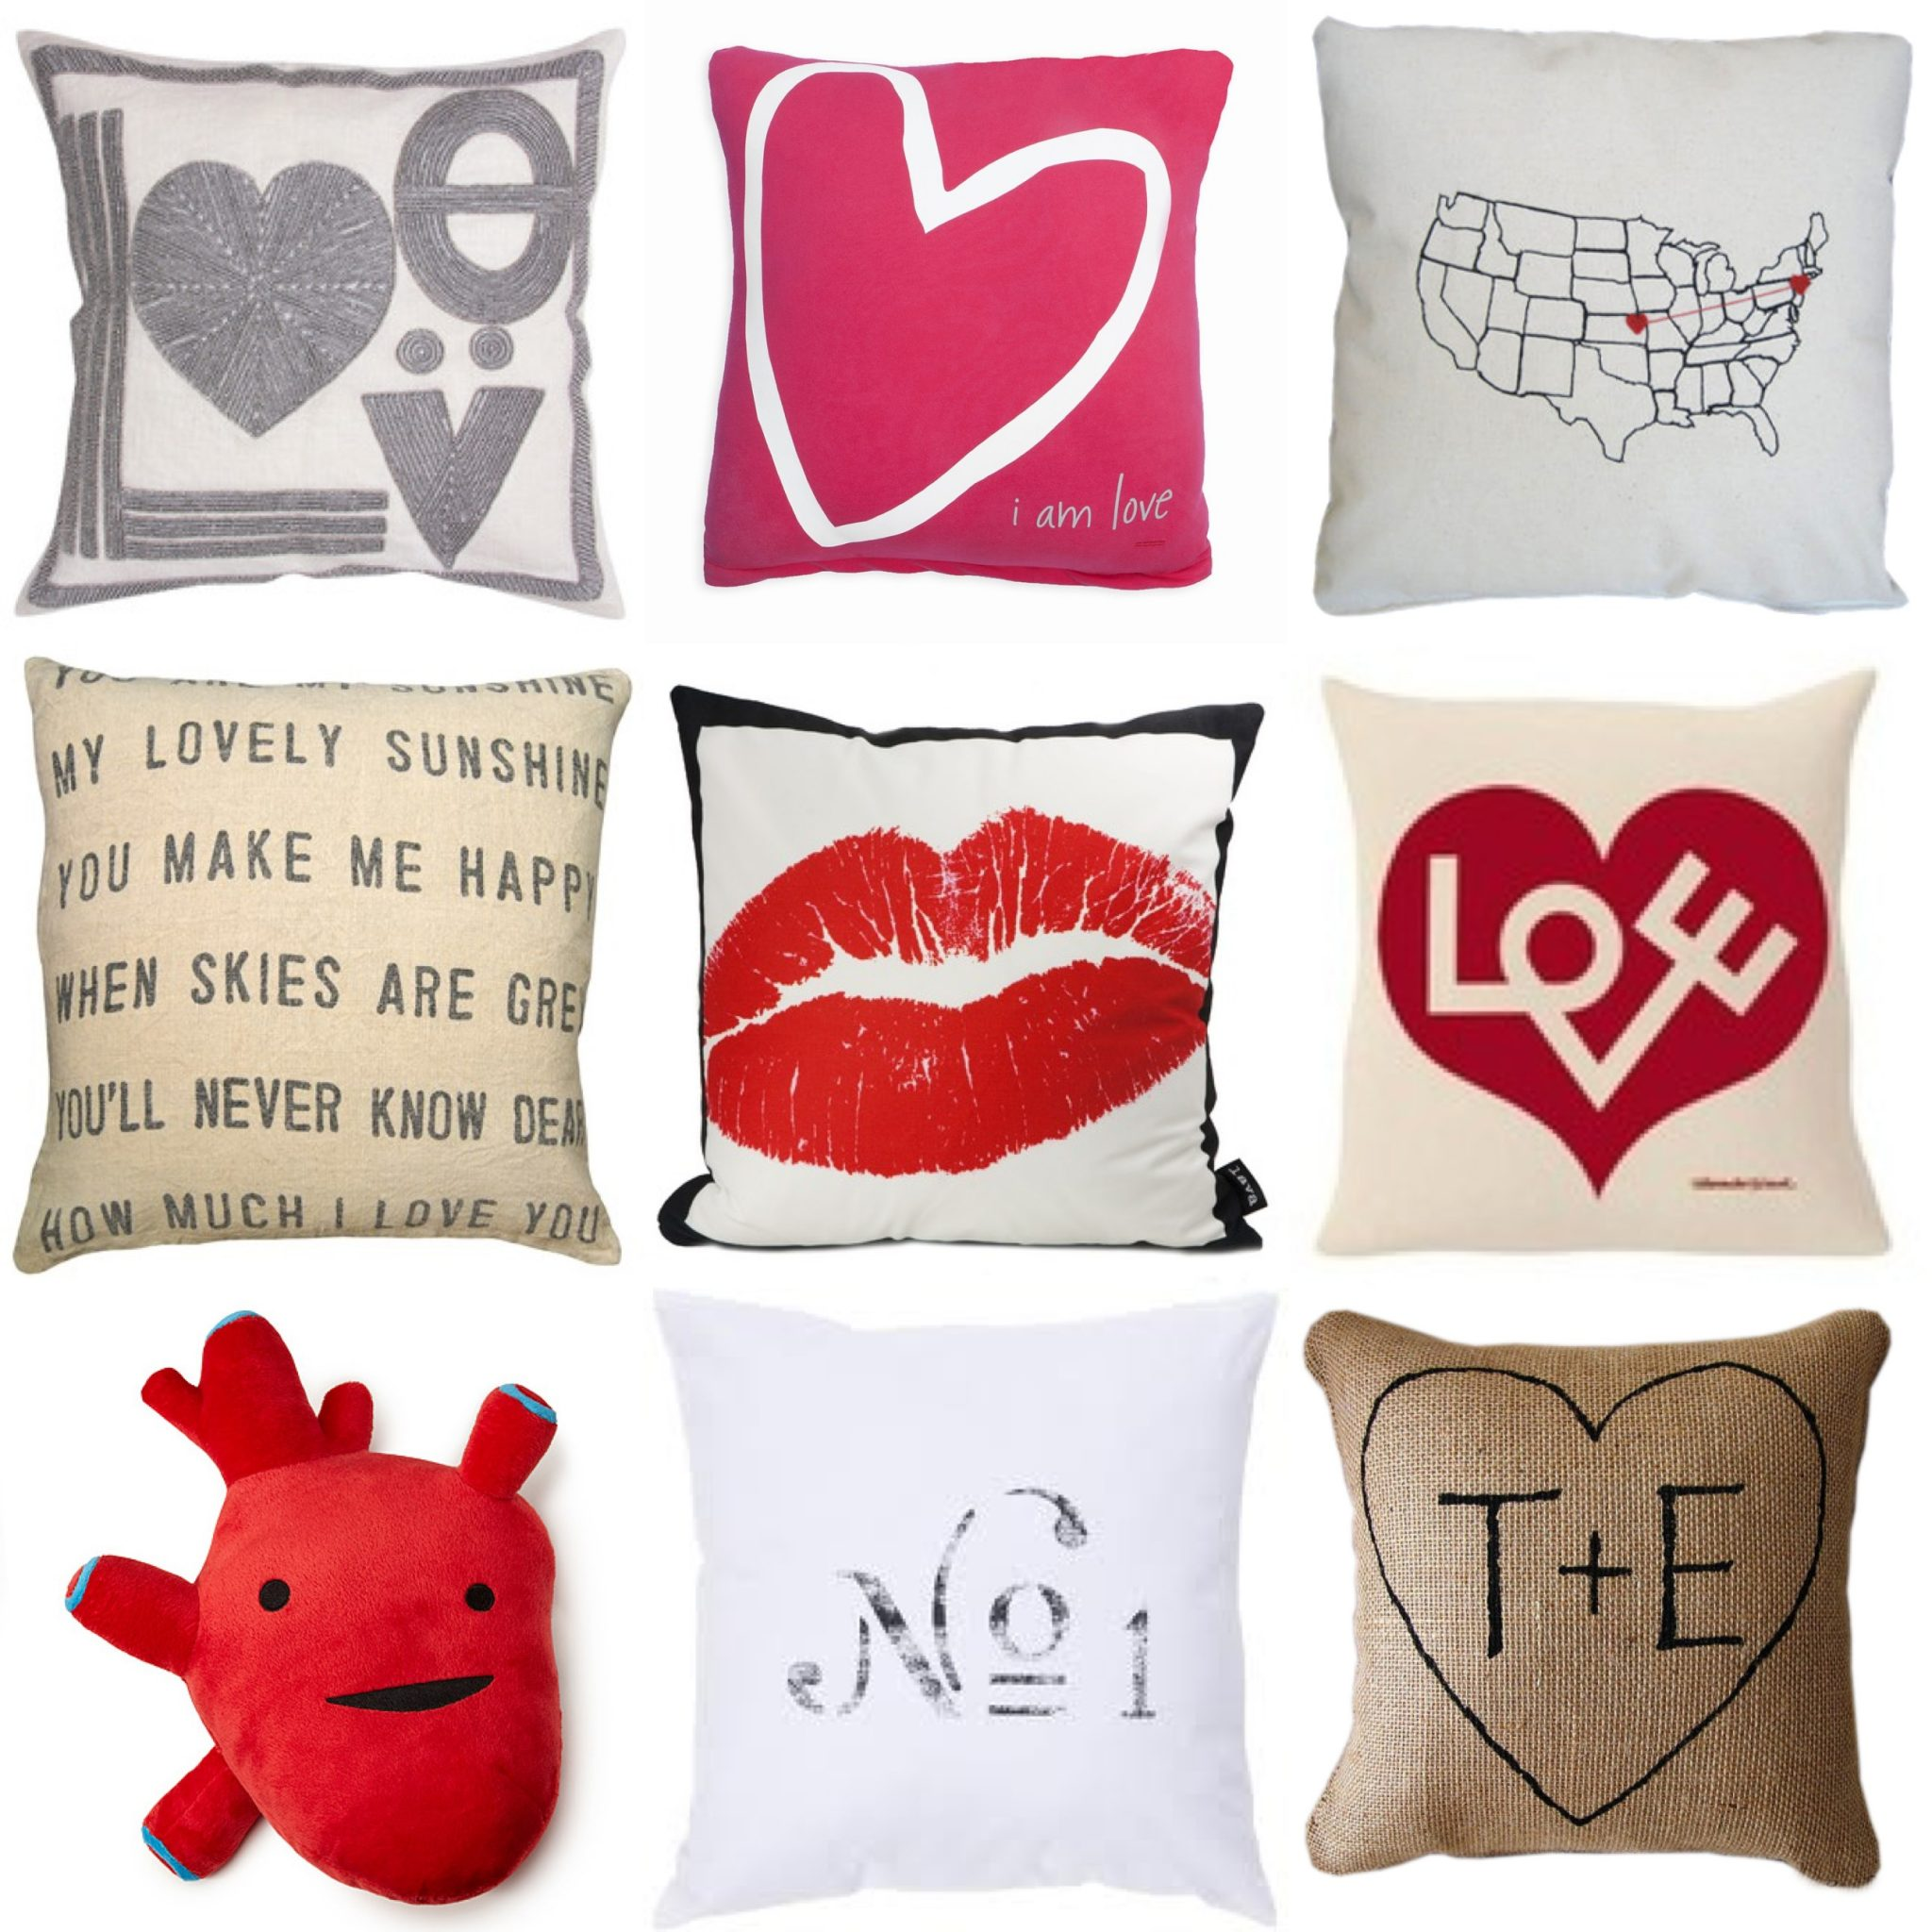 tossing love around with valentines day themed pillows